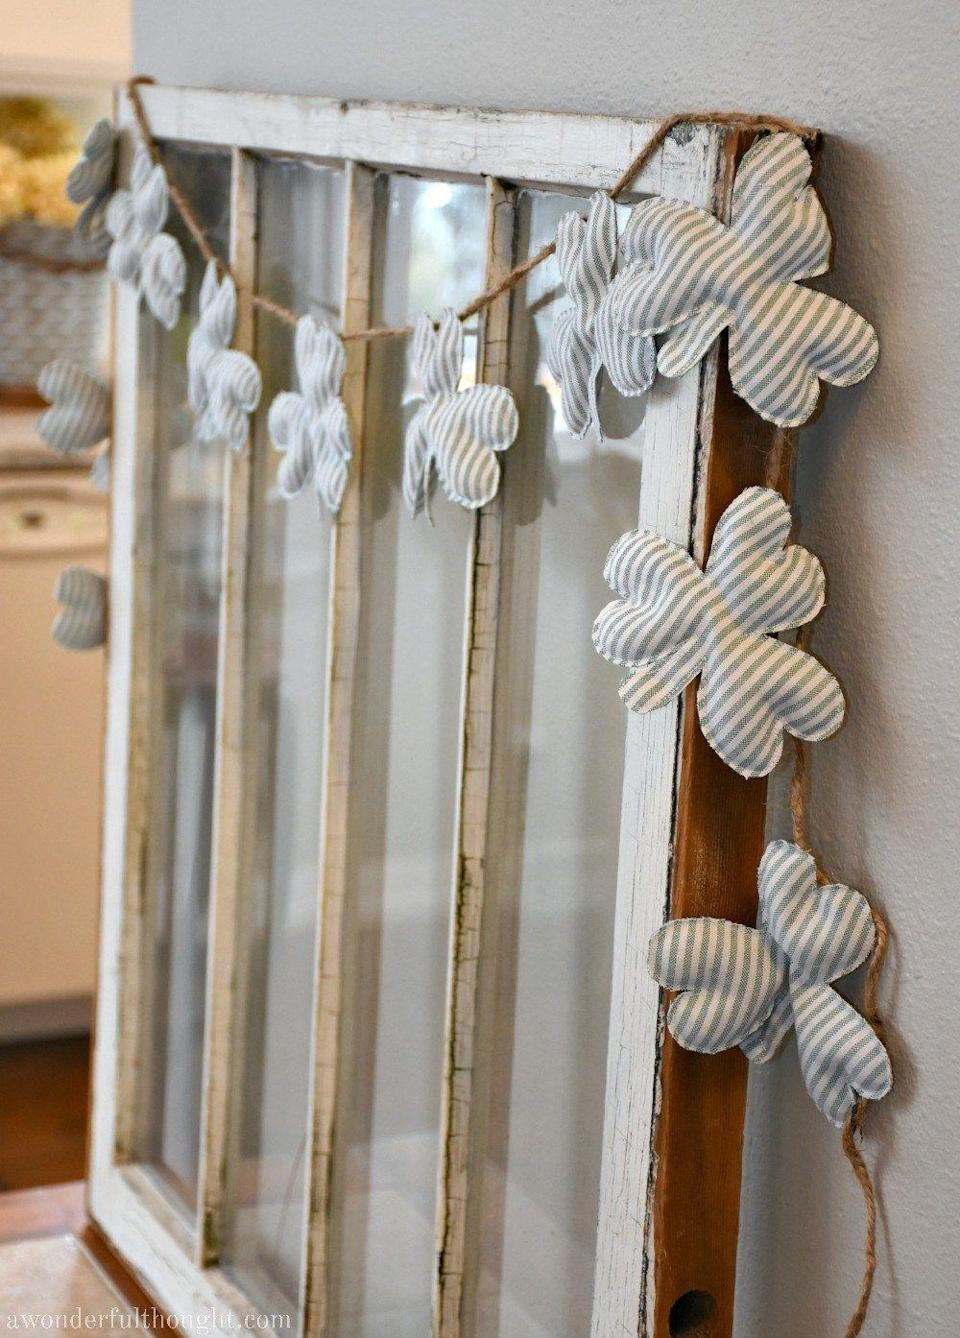 """<p>A rice-filled, cardstock garland makes a subtle St. Patrick's Day statement, meaning you can win holiday decorating points without having to go overboard. </p><p><strong>Get the tutorial at <a href=""""https://awonderfulthought.com/farmhouse-shamrock-garland/?utm_medium=social&utm_source=pinterest&utm_campaign=tailwind_tribes&utm_content=tribes&utm_term=305493394_8753474_368507"""" rel=""""nofollow noopener"""" target=""""_blank"""" data-ylk=""""slk:A Wonderful Thought"""" class=""""link rapid-noclick-resp"""">A Wonderful Thought</a>. </strong></p><p><strong><a class=""""link rapid-noclick-resp"""" href=""""https://www.amazon.com/Happy-Belly-Jasmine-Rice/dp/B08B217JP5/ref=sr_1_8?tag=syn-yahoo-20&ascsubtag=%5Bartid%7C10050.g.4035%5Bsrc%7Cyahoo-us"""" rel=""""nofollow noopener"""" target=""""_blank"""" data-ylk=""""slk:SHOP RICE"""">SHOP RICE</a><br></strong></p>"""